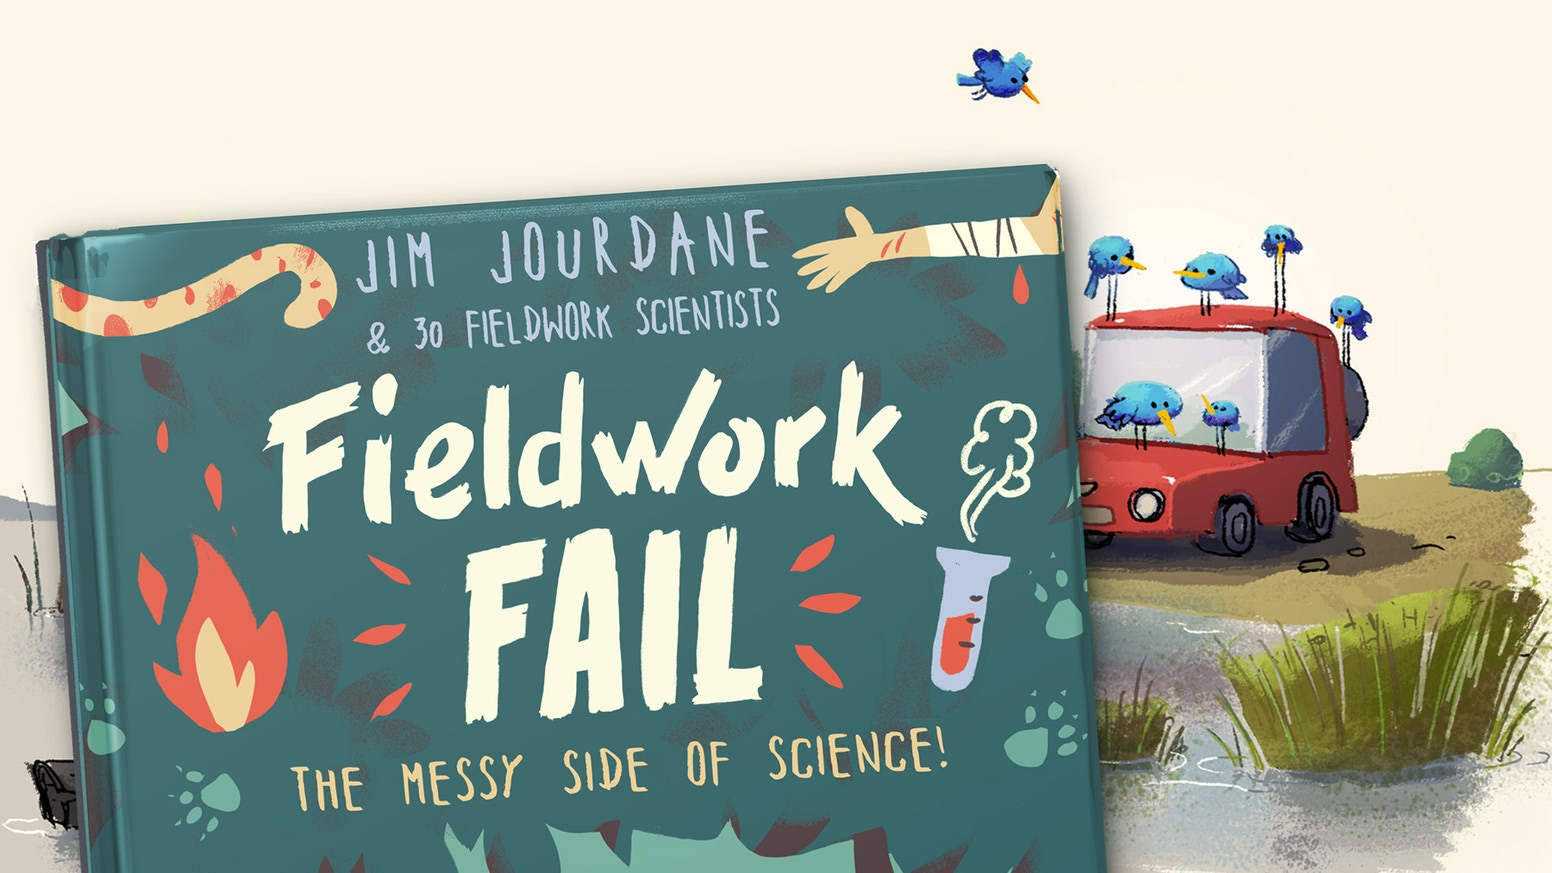 Ever been glued to a crocodile? The most embarrassing stories of fieldwork scientists illustrated in a book!